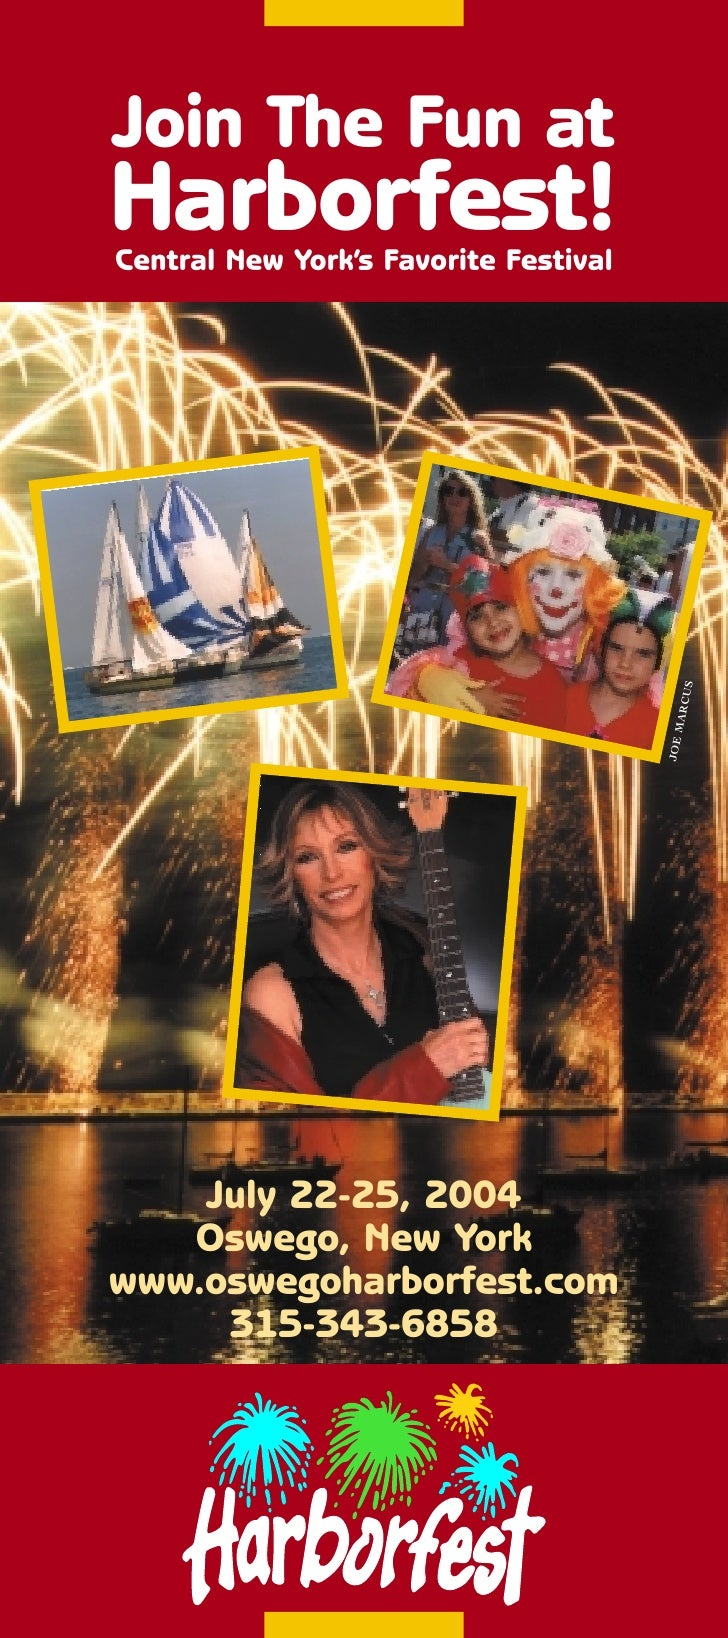 Join The Fun at Harborfest! Central New York's Favorite Festival                                                    US    ...